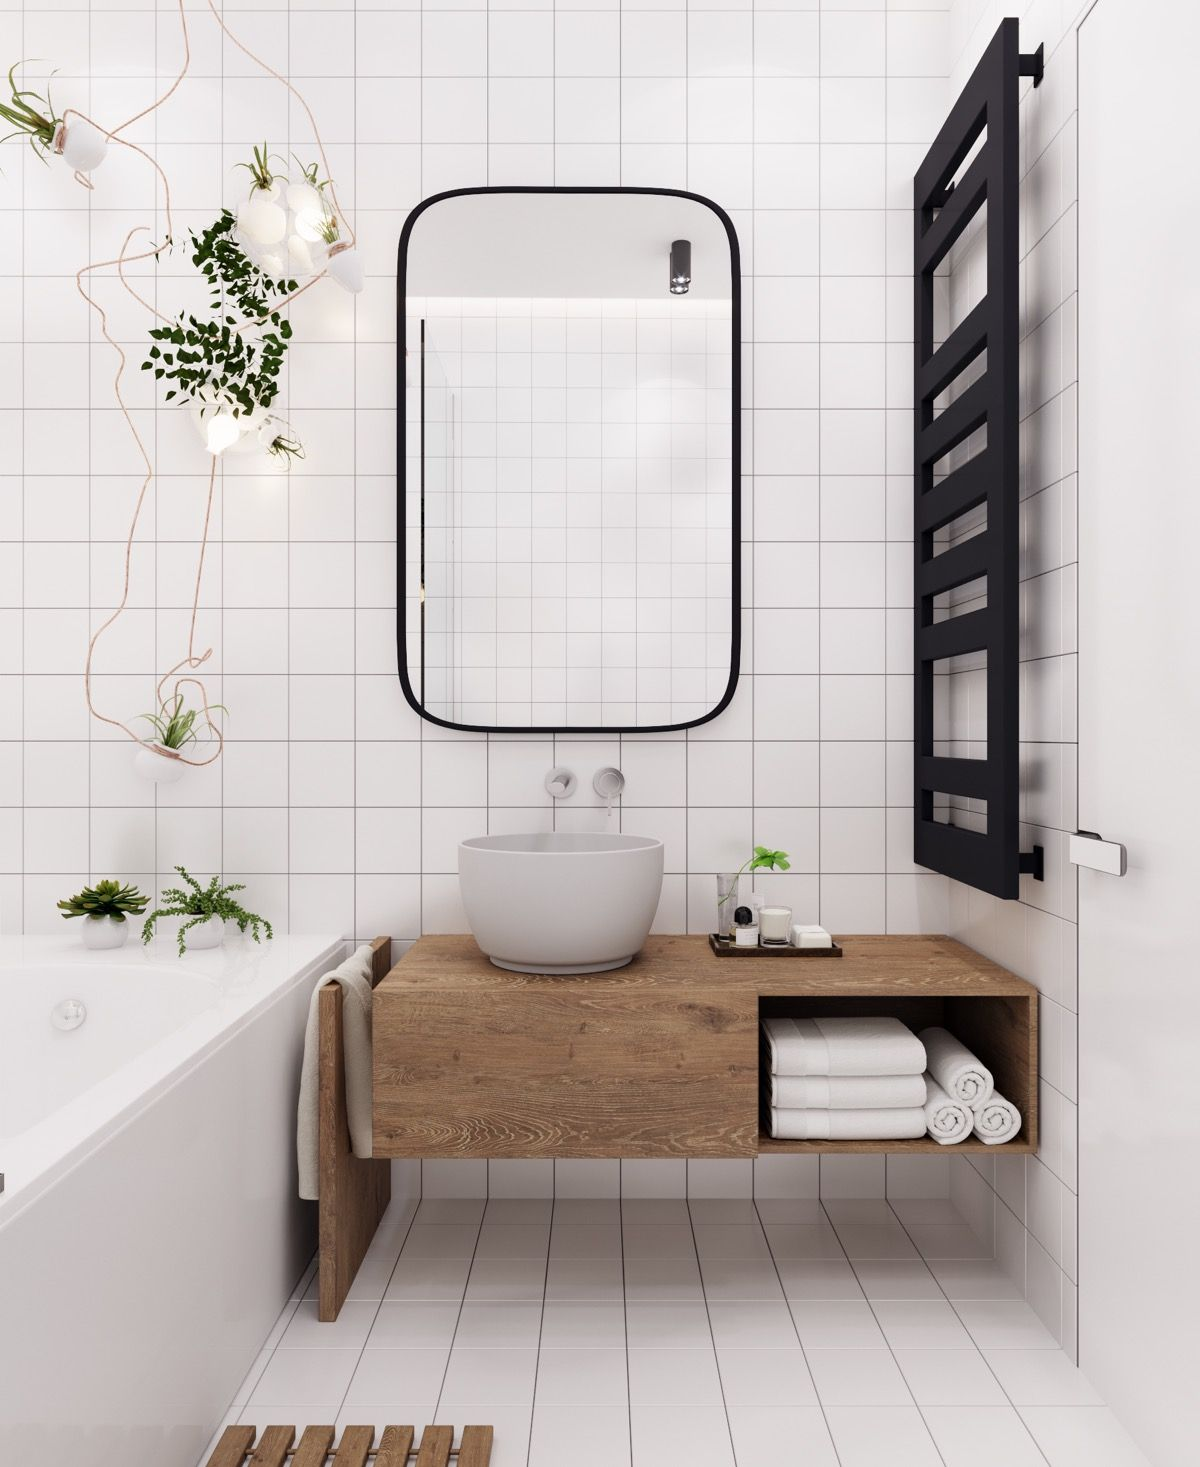 There isn't a home design that passes through here that doesn't have an amazing bathroom idea that is completed with a beautiful modern vanity unit. From ul